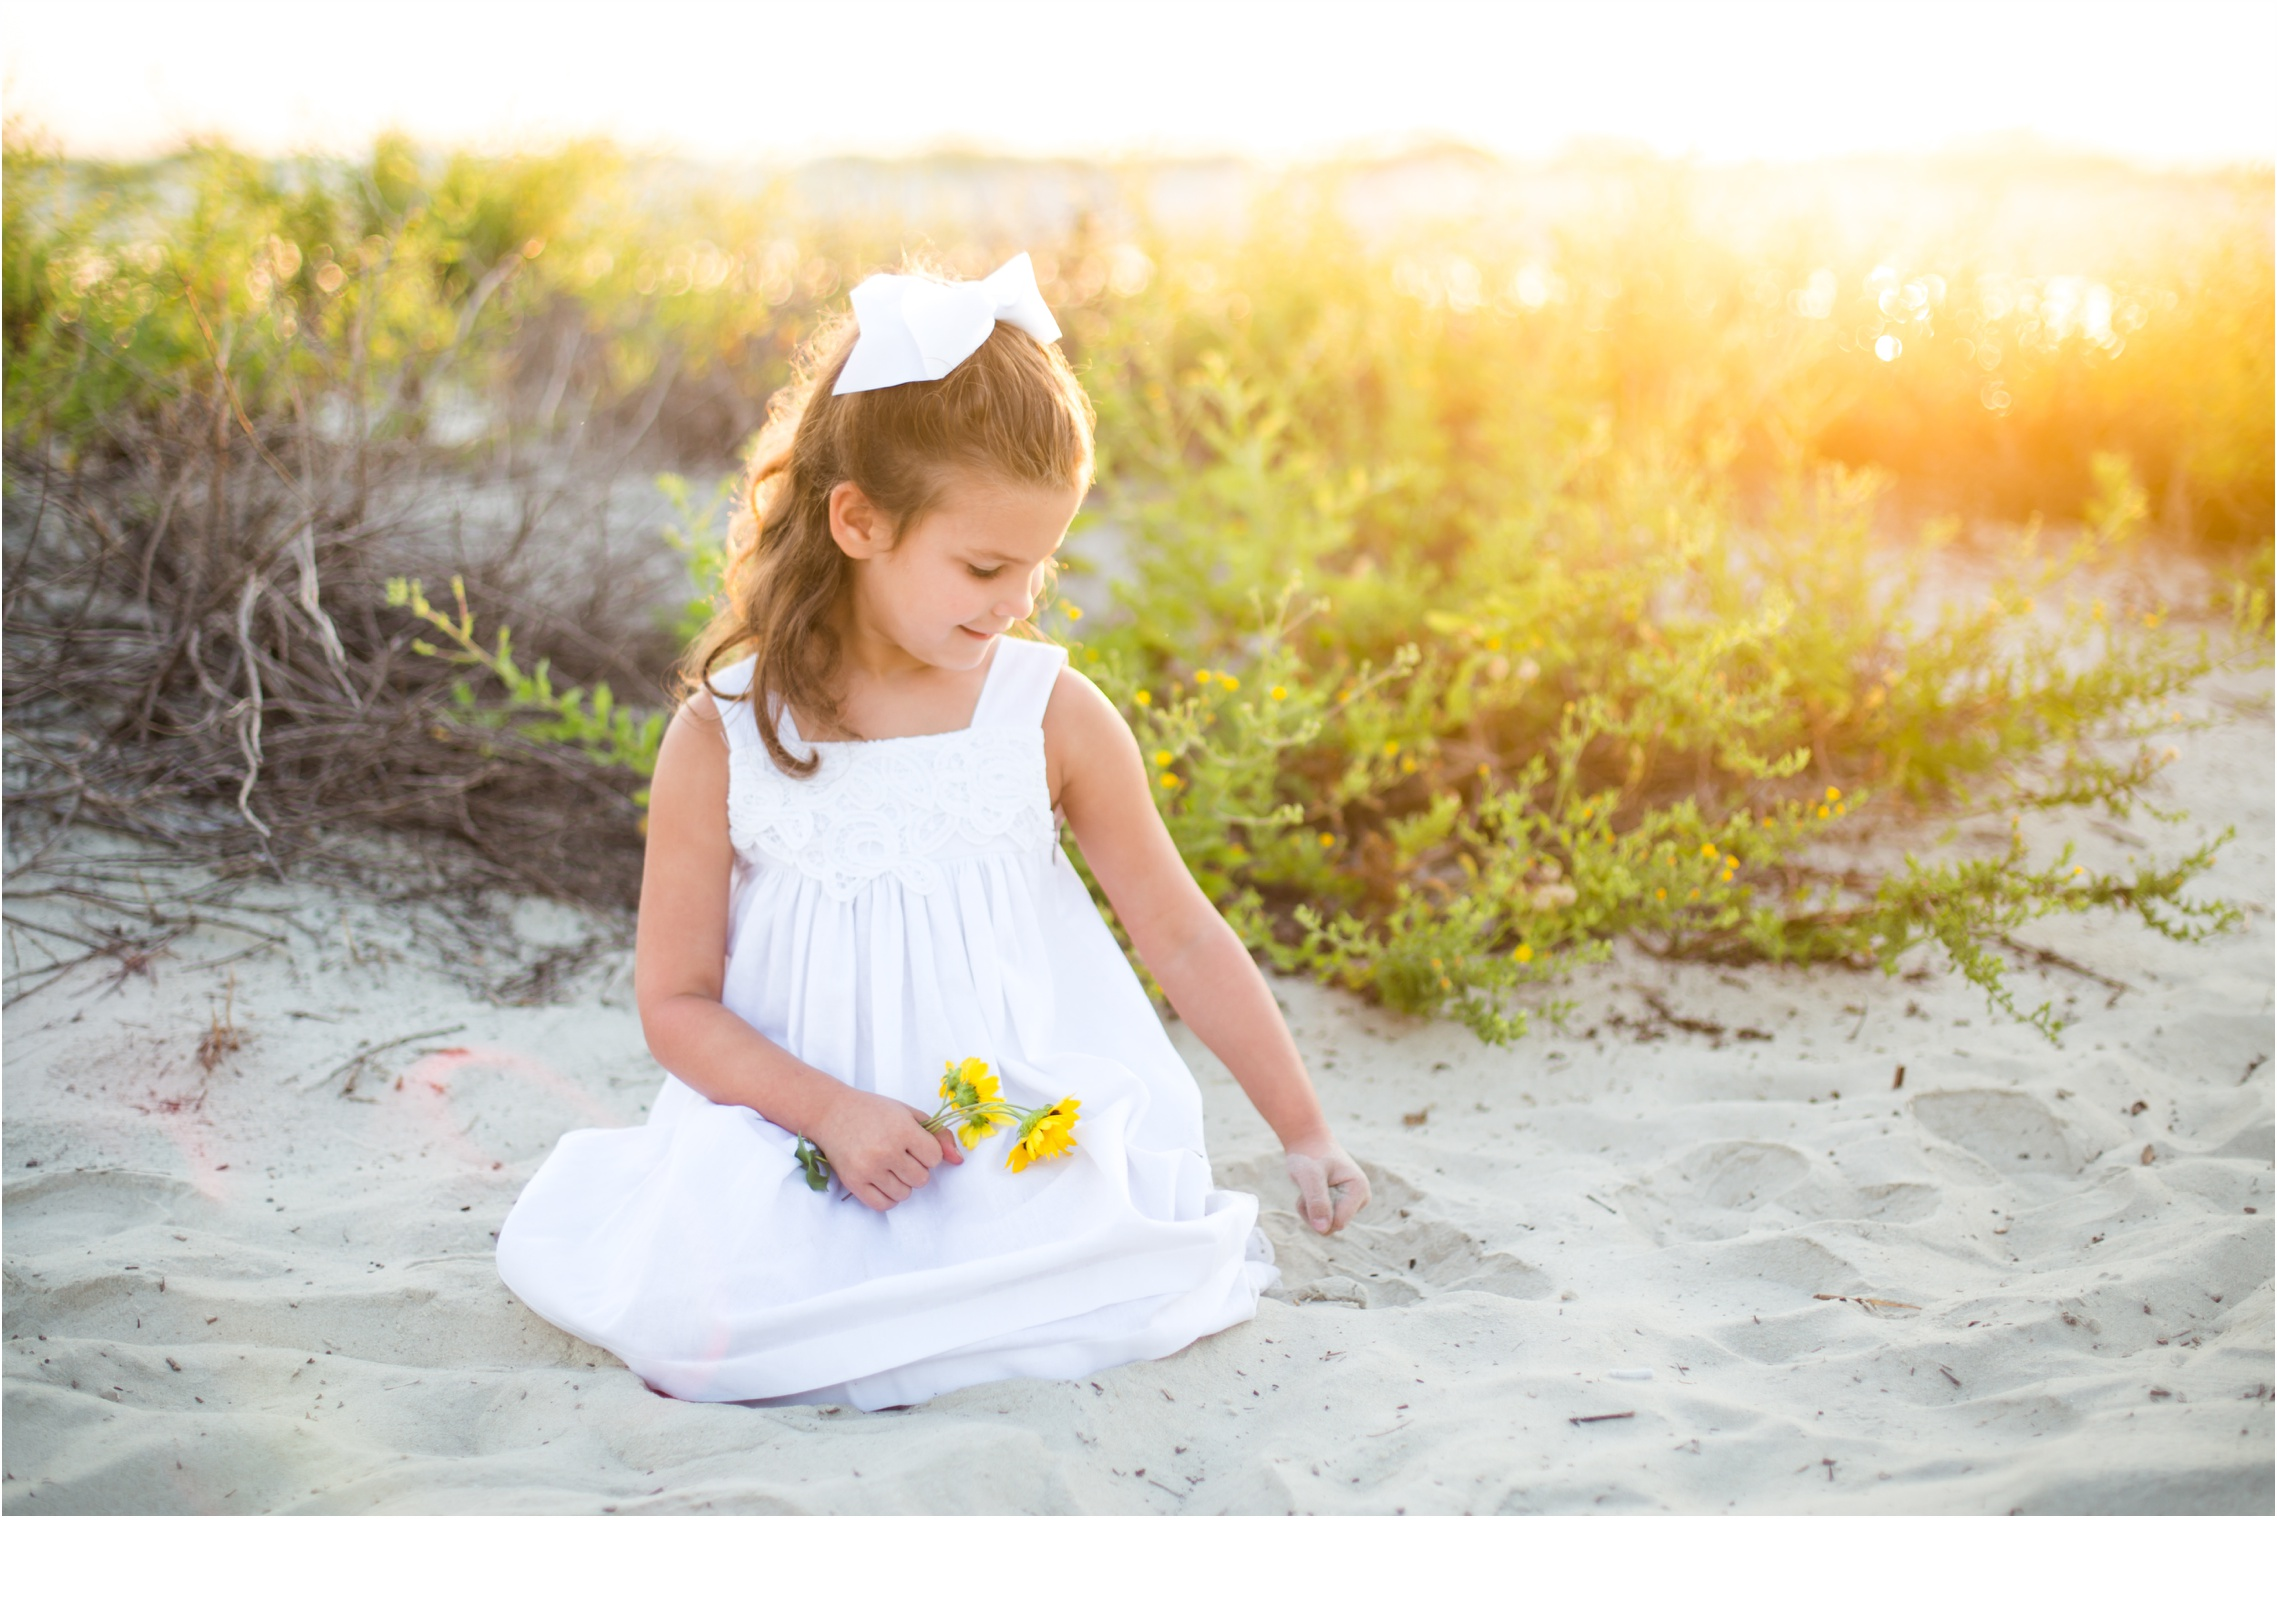 Rainey_Gregg_Photography_St._Simons_Island_Georgia_California_Wedding_Portrait_Photography_0169.jpg